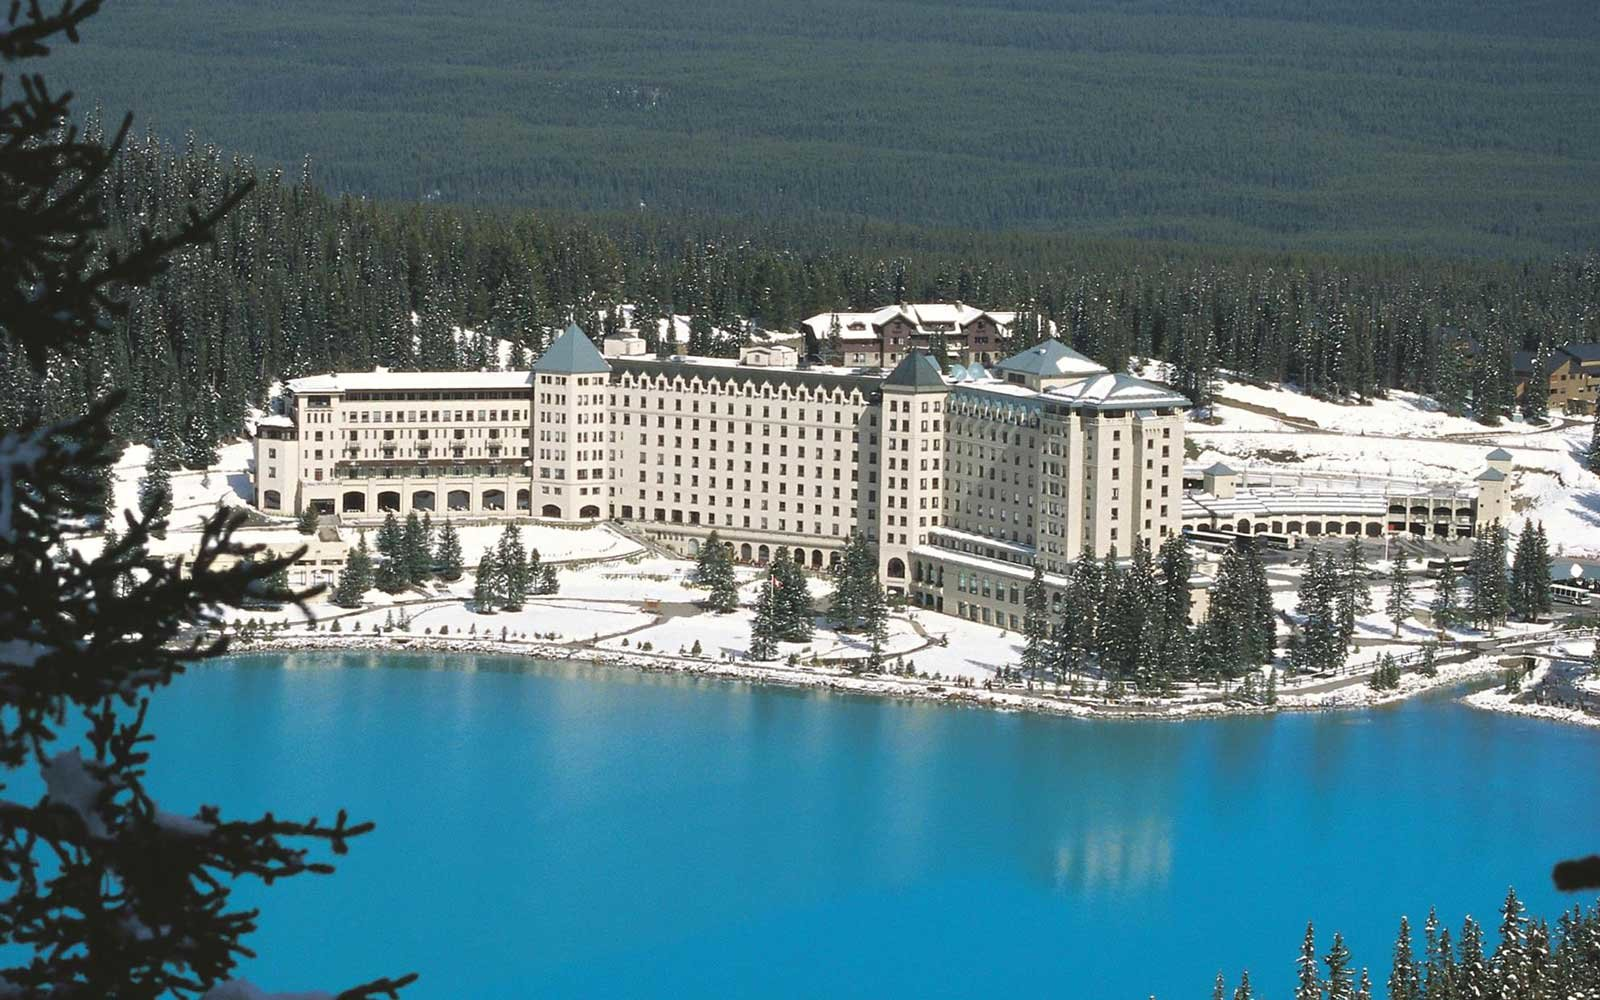 Aerial view of the Fairmont Lake Louise resort